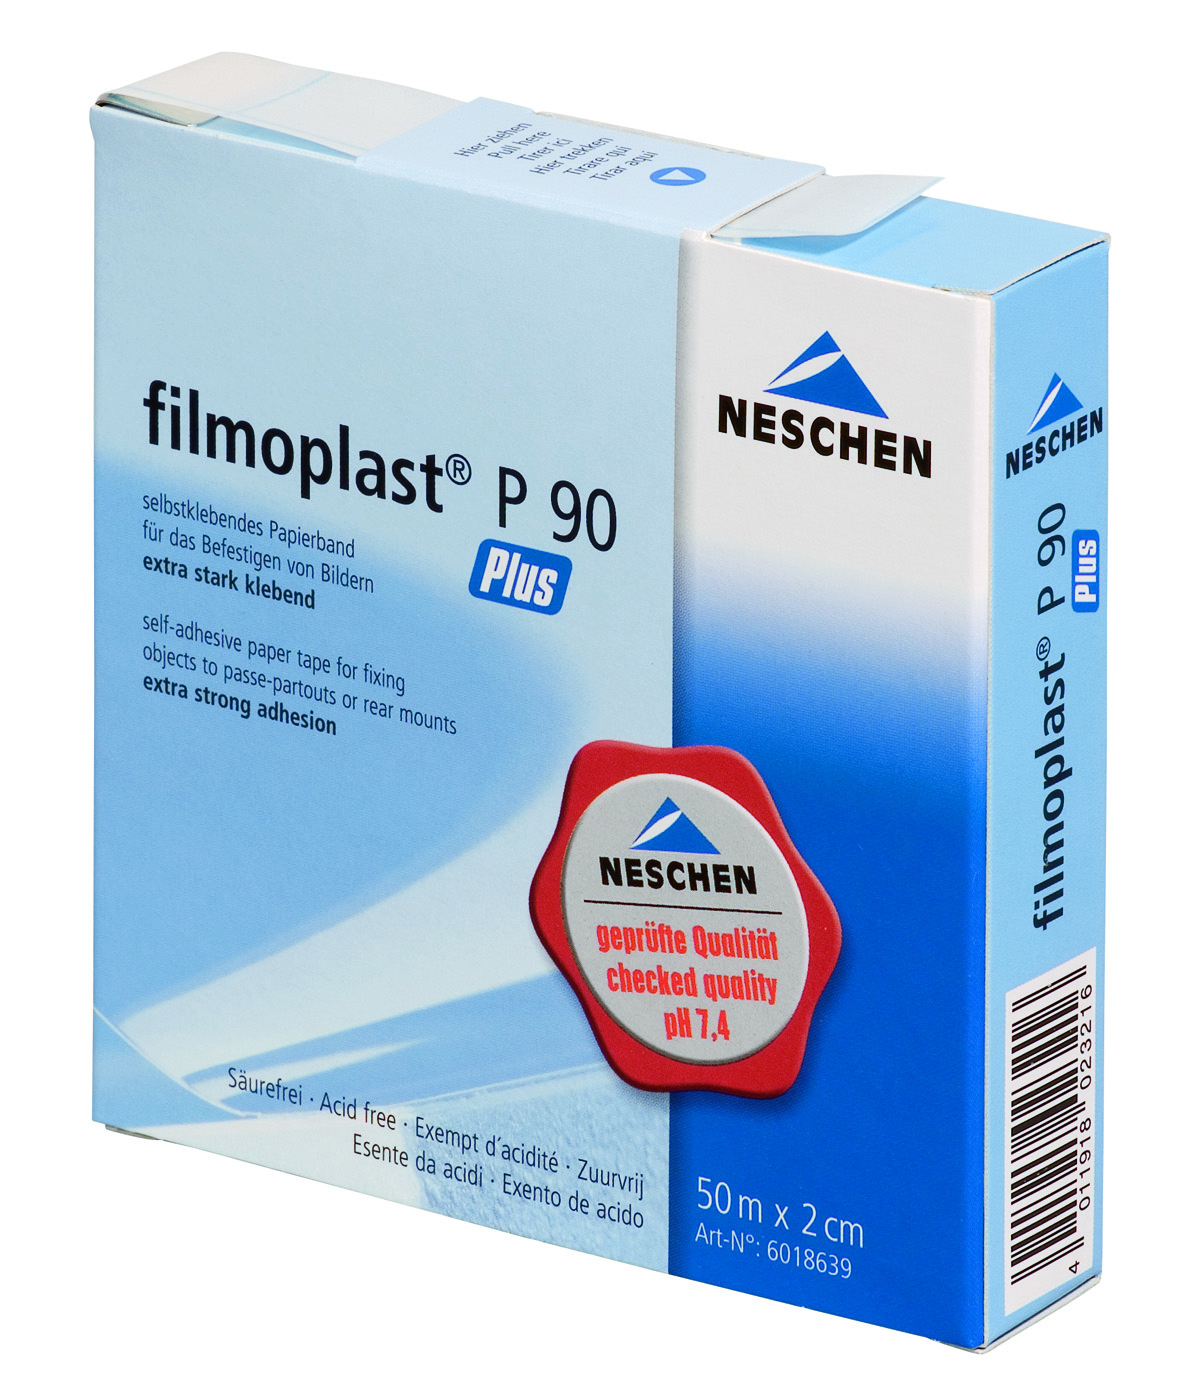 Filmoplast P90 Plus